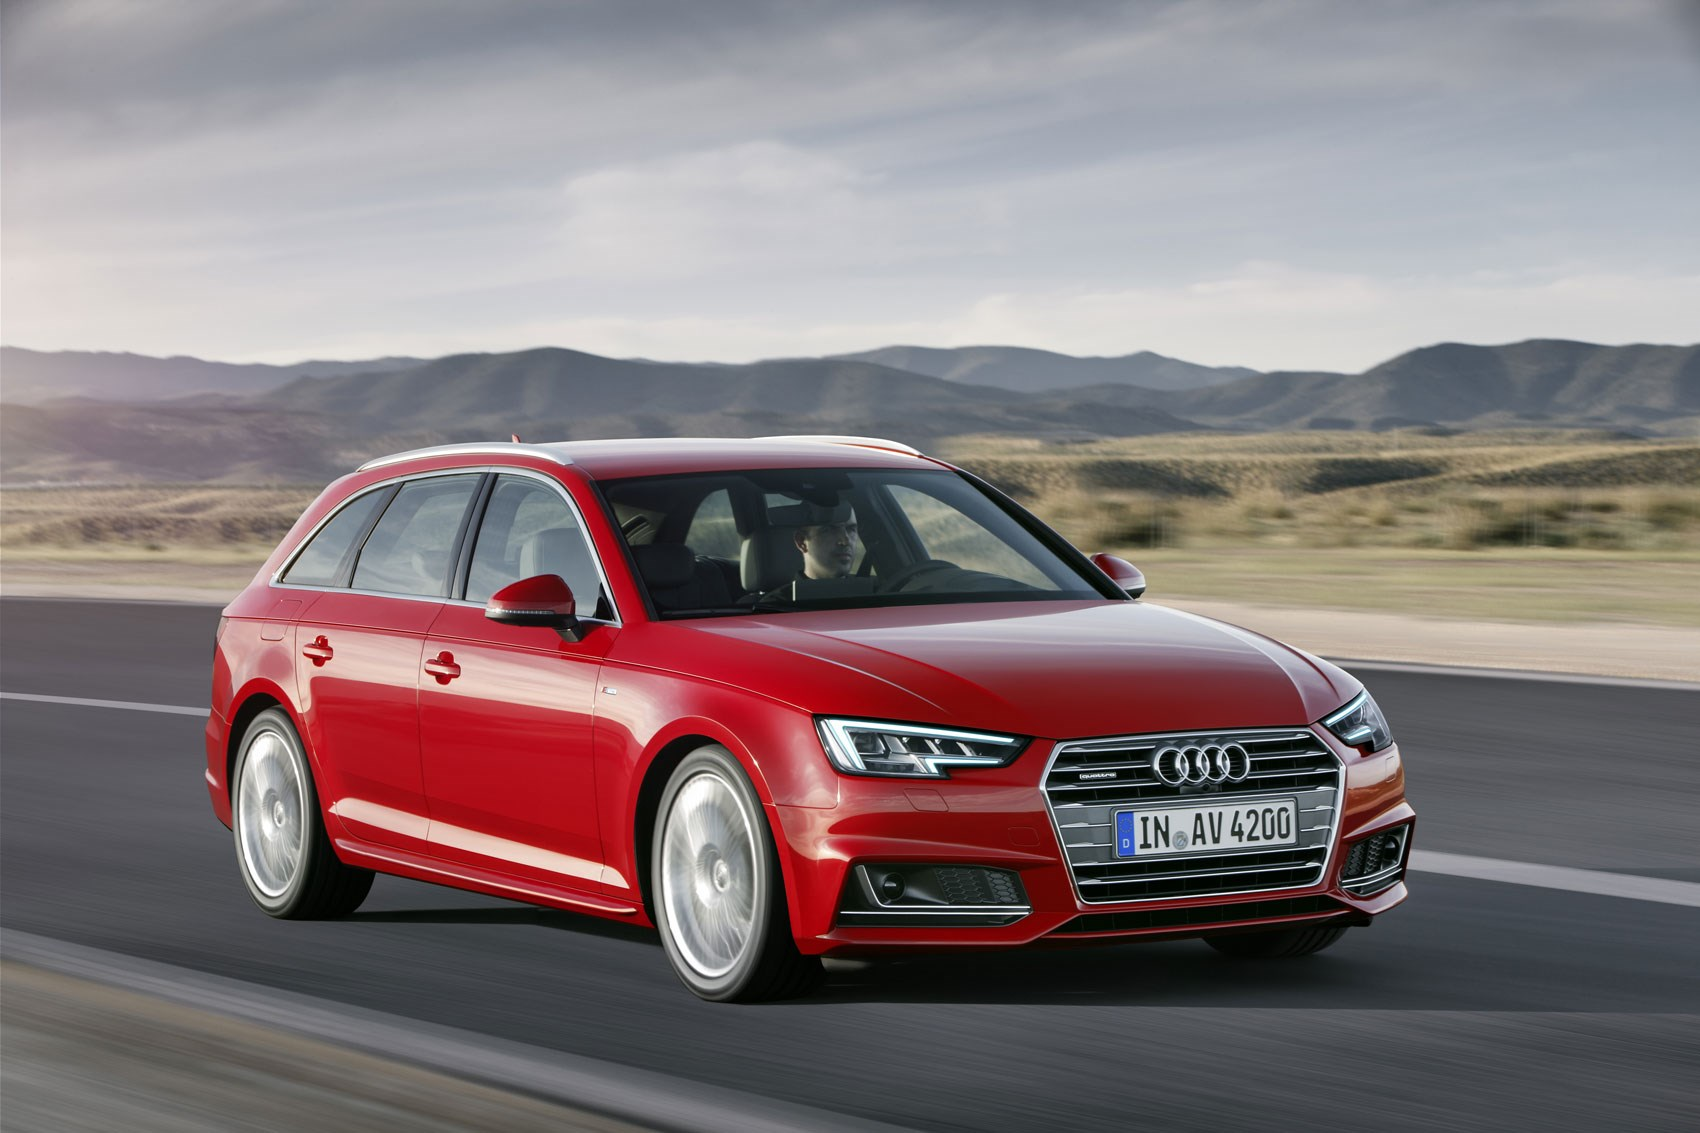 Audi A Starts From Pricing And Specs Announced CAR - Audi a4 specs